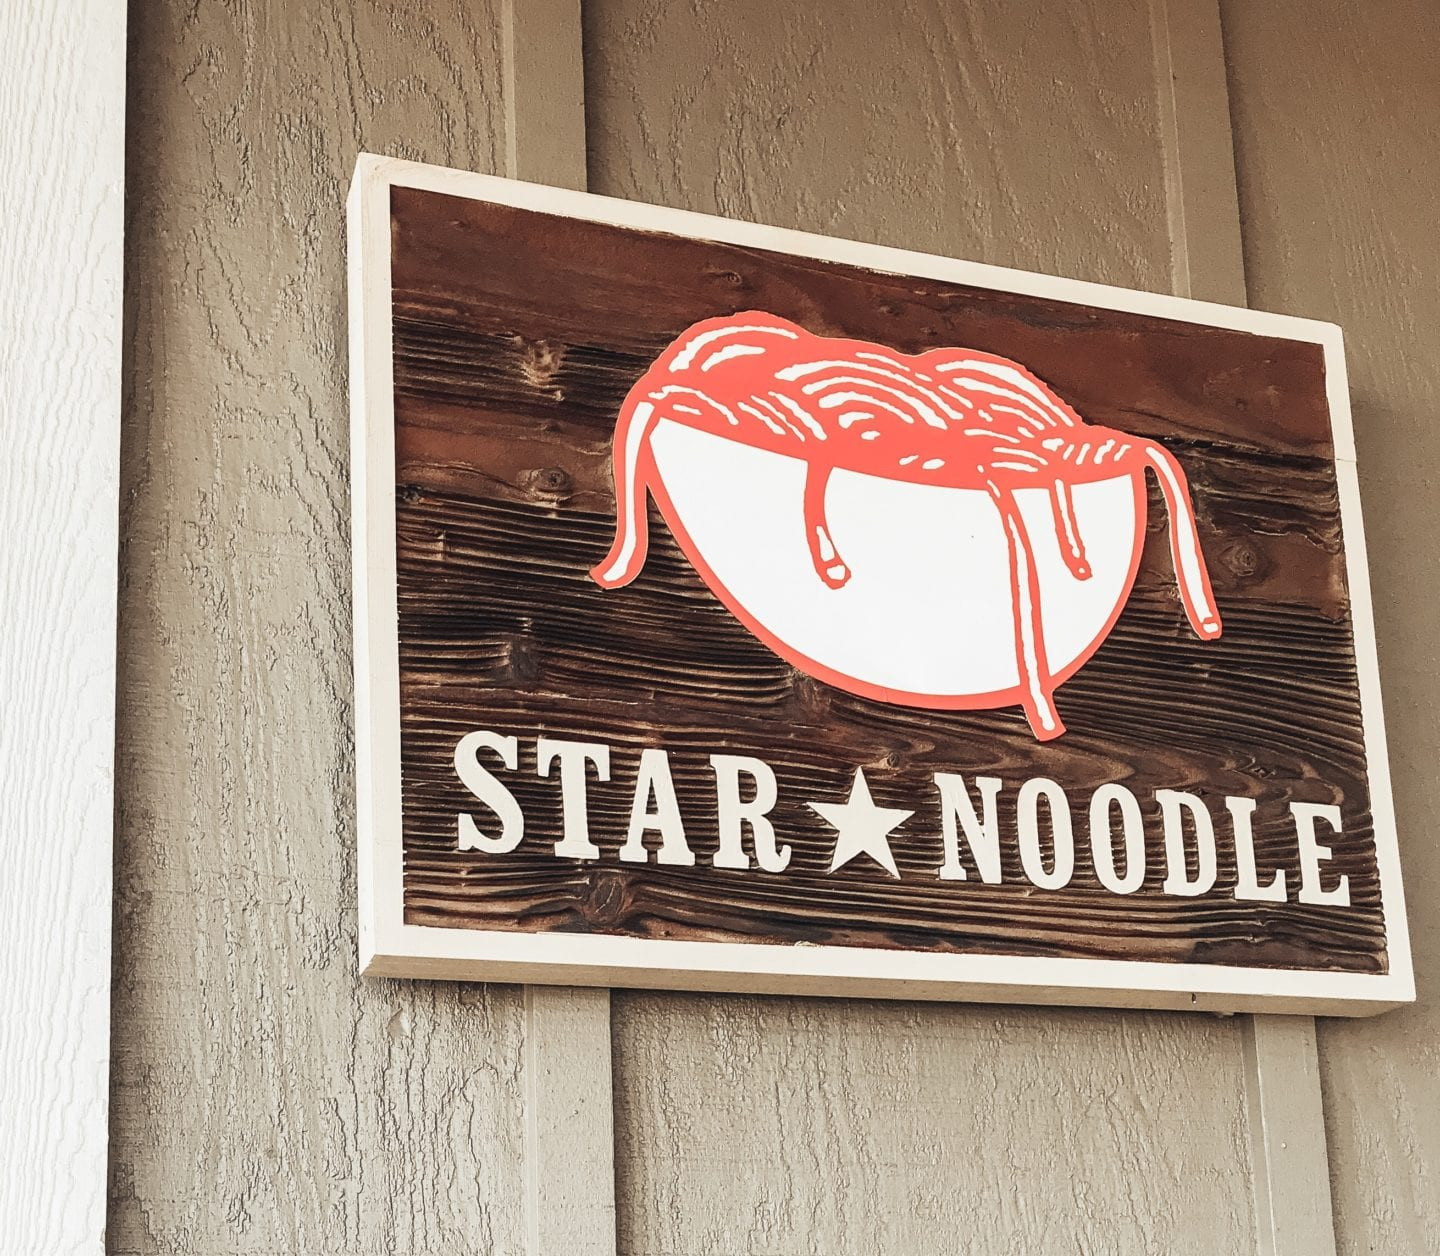   Top Things to Do in Maui featured by top San Francisco travel blog, Just Add Glam: eat at Star Noodle